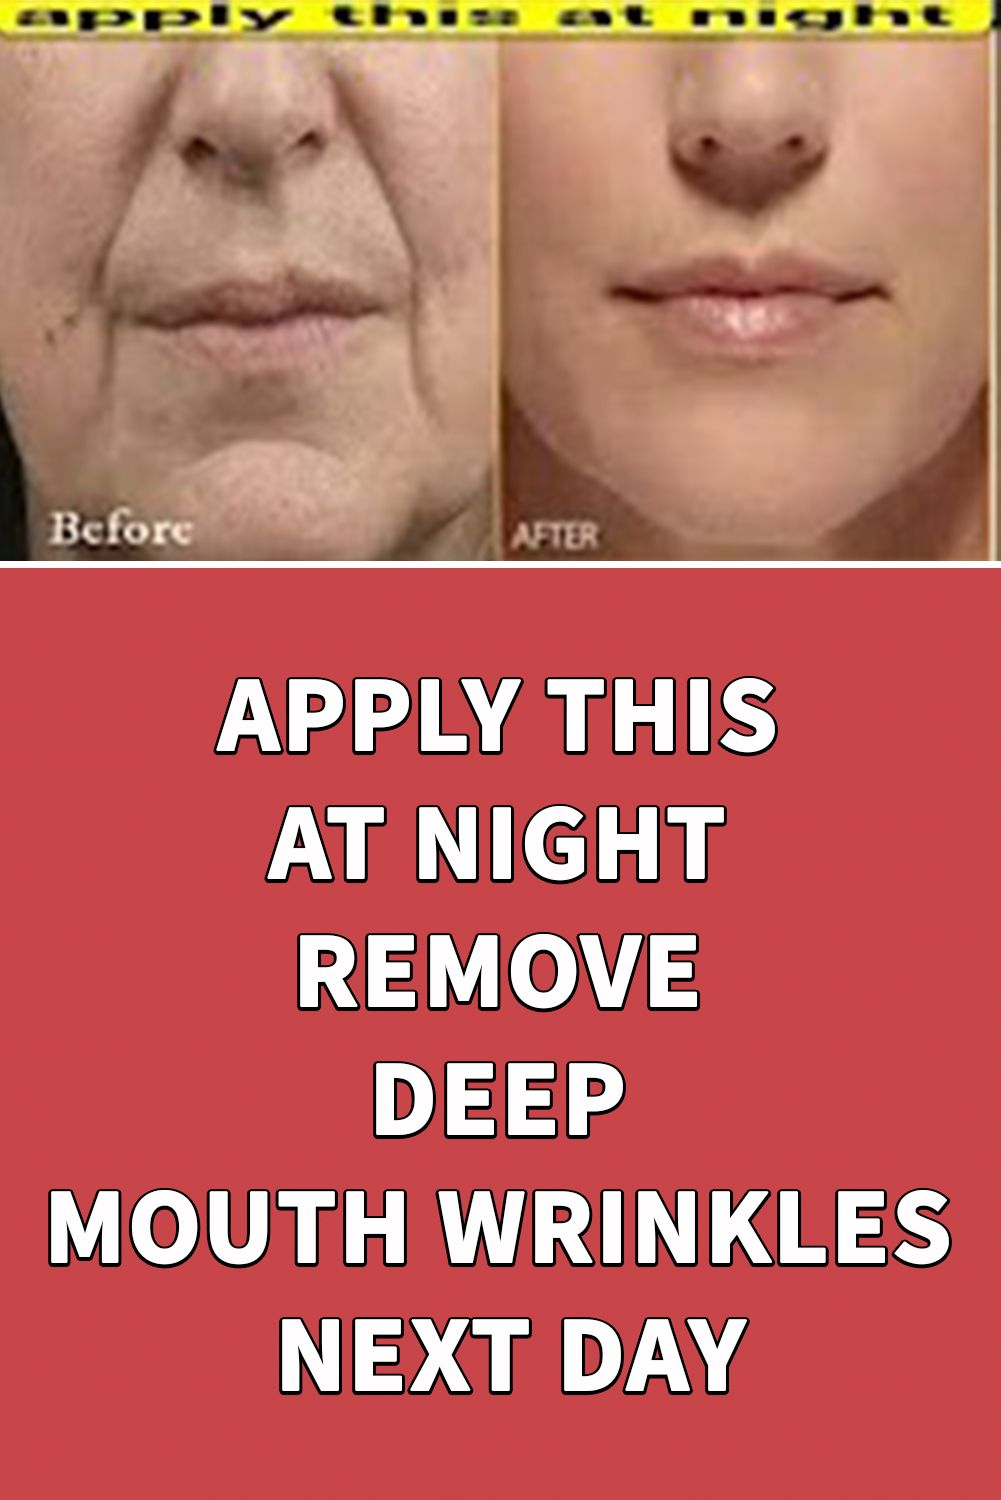 APPLY THIS AT NIGHT REMOVE DEEP MOUTH WRINKLES NEXT DAY in